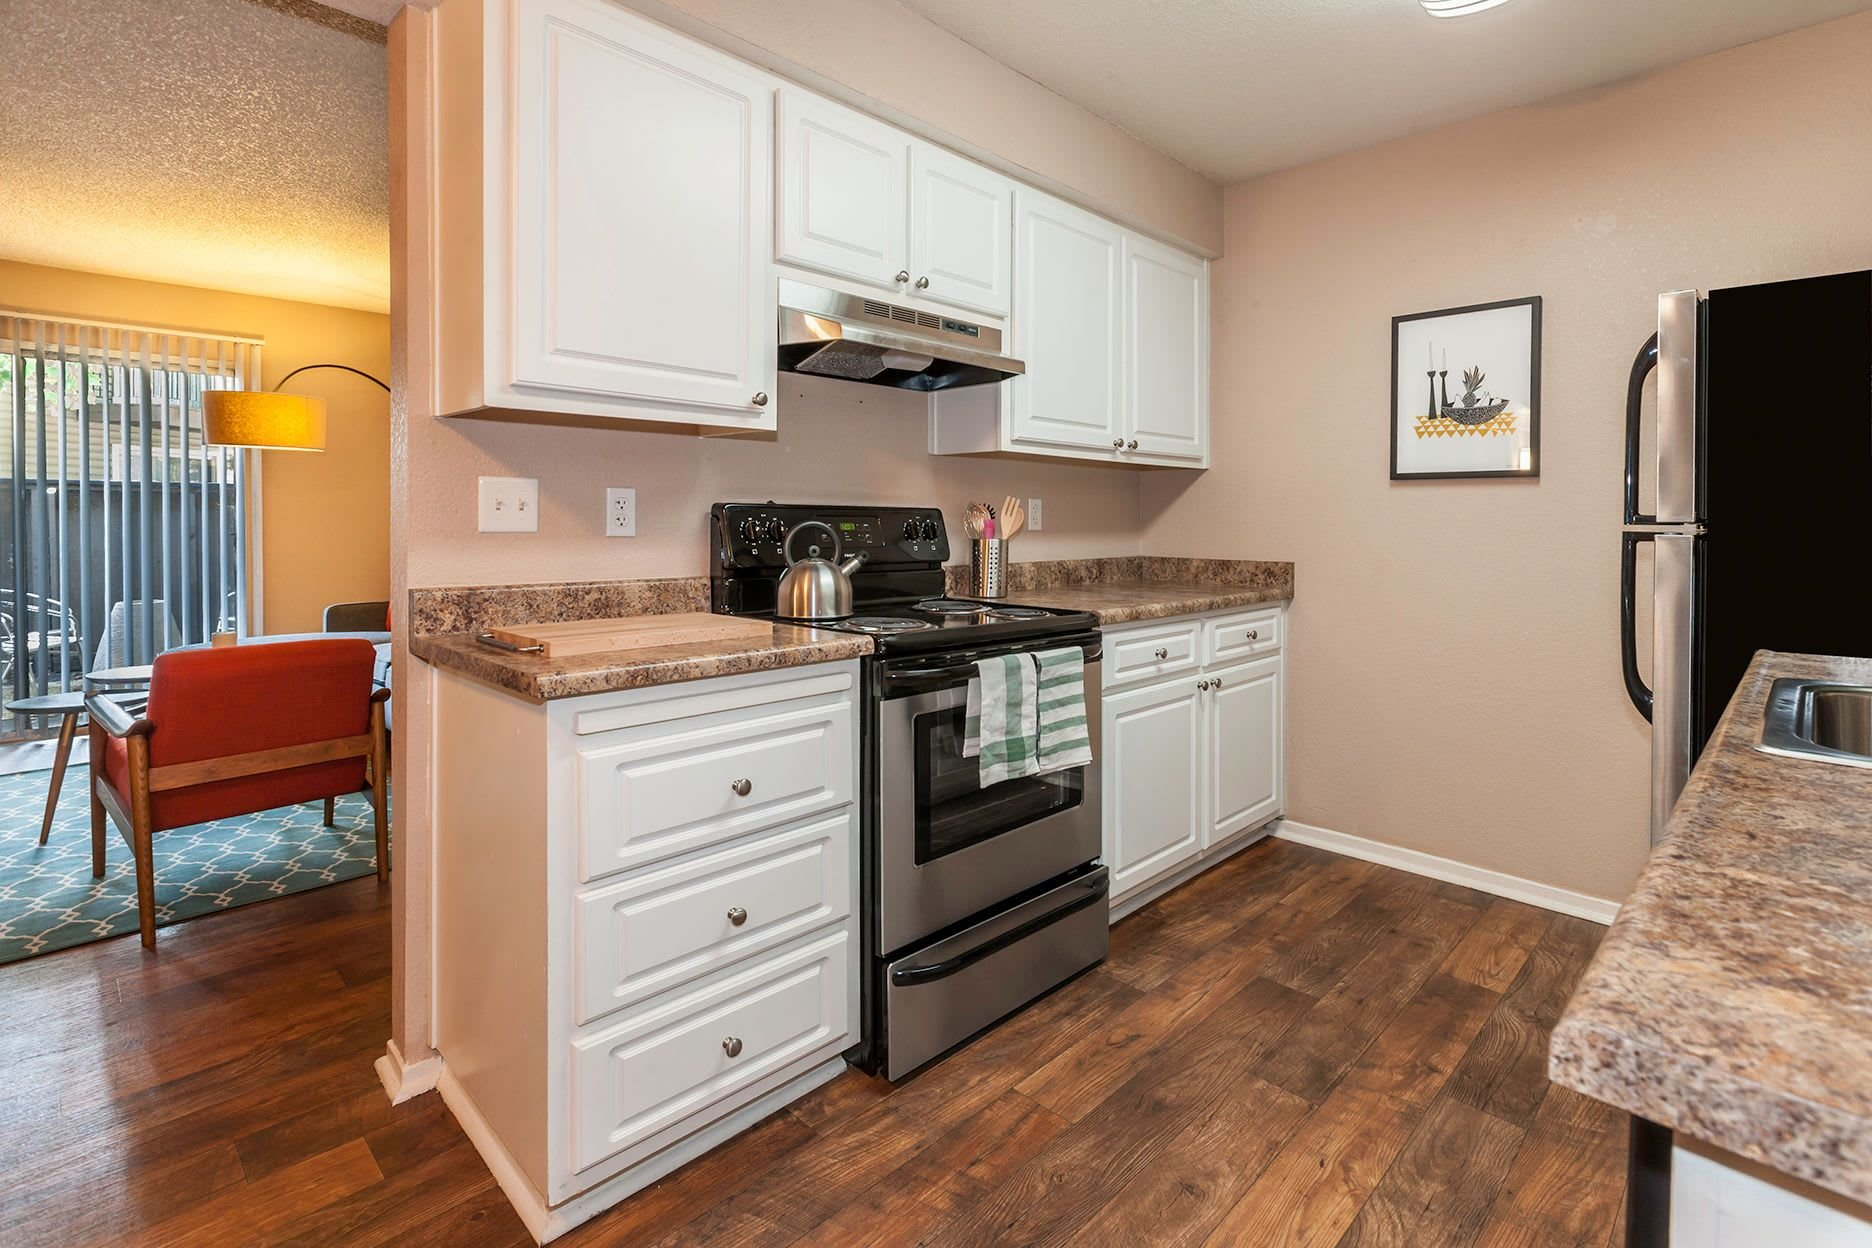 Best Luxury 1 2 Bedroom Apartments In Sacramento Ca With Pictures